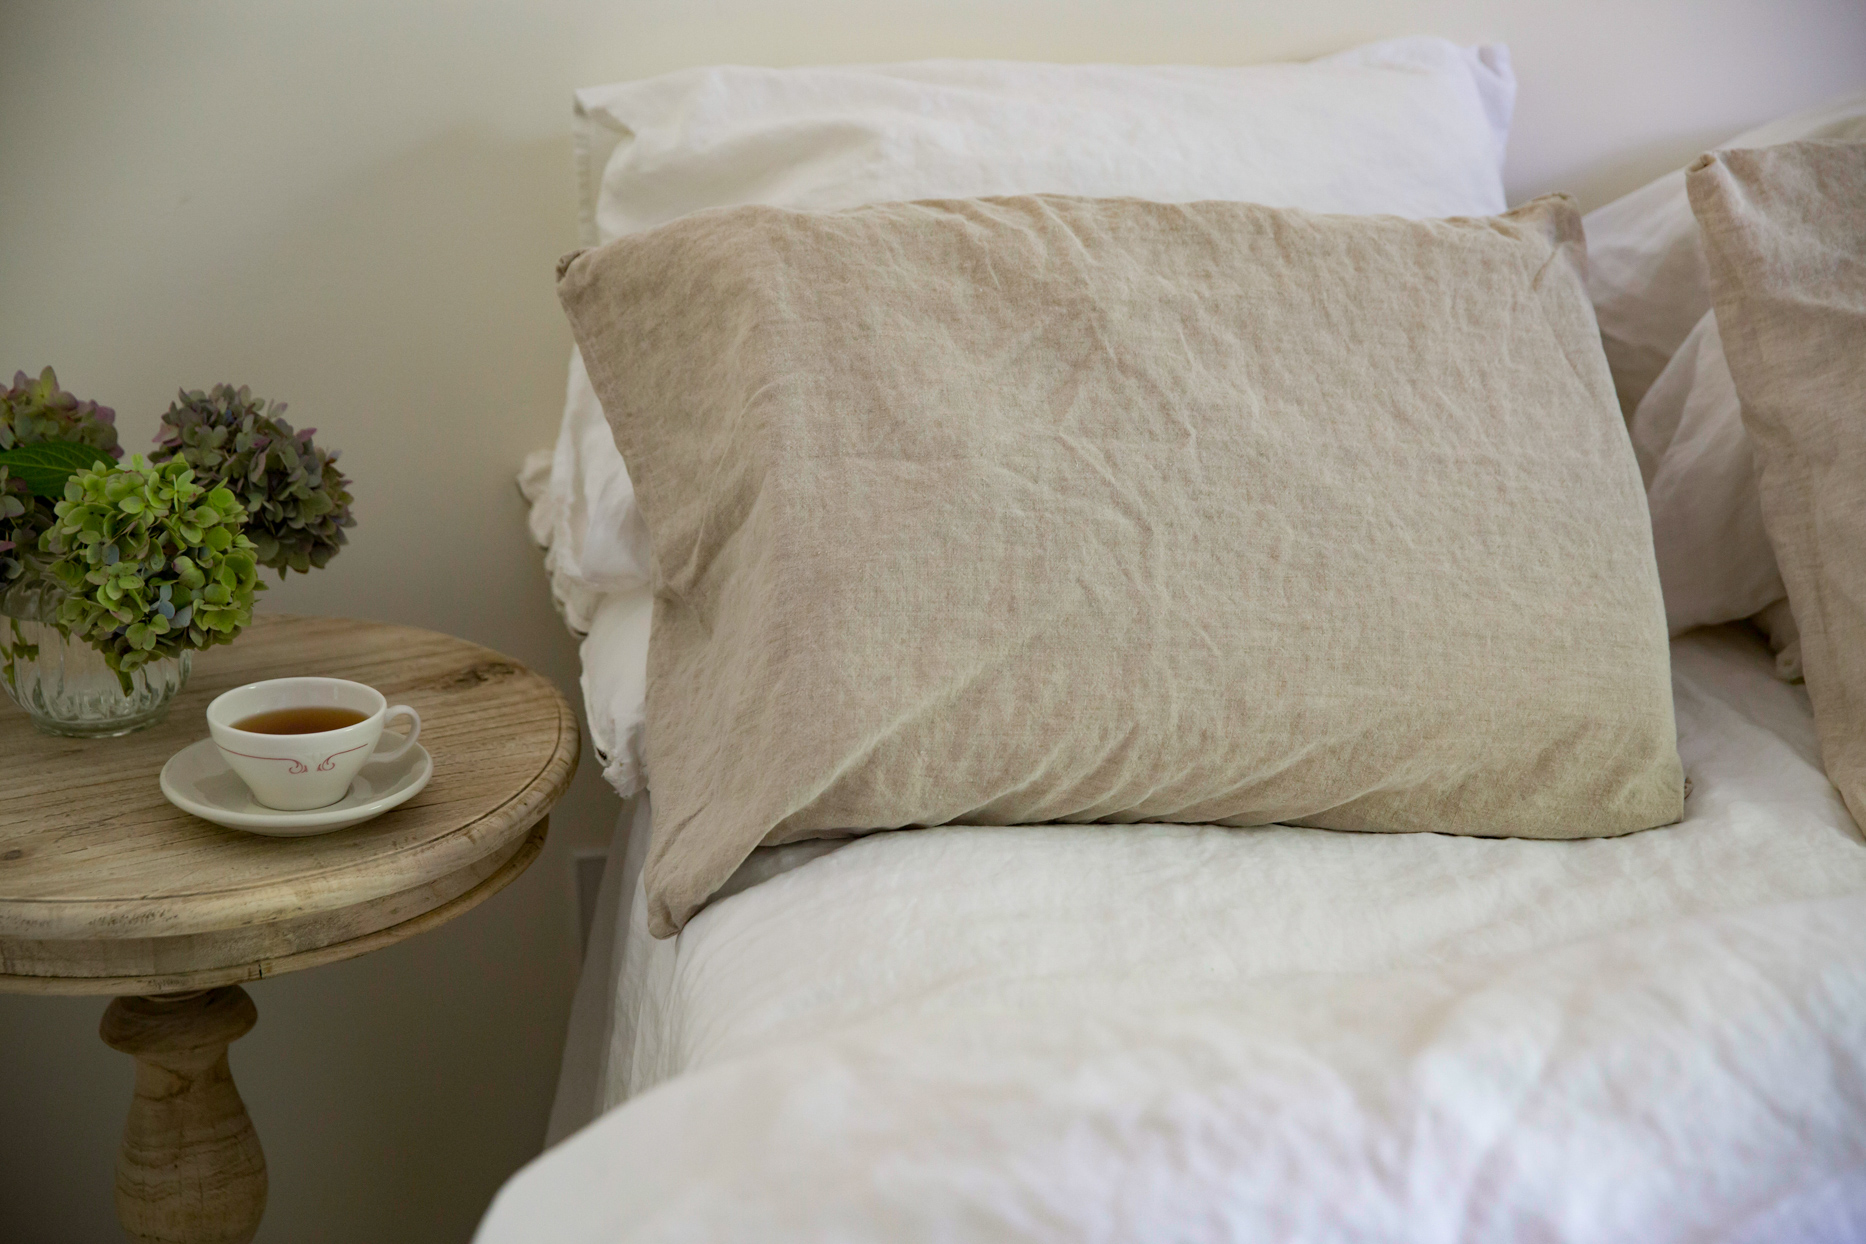 beige linen bedsheets and night table